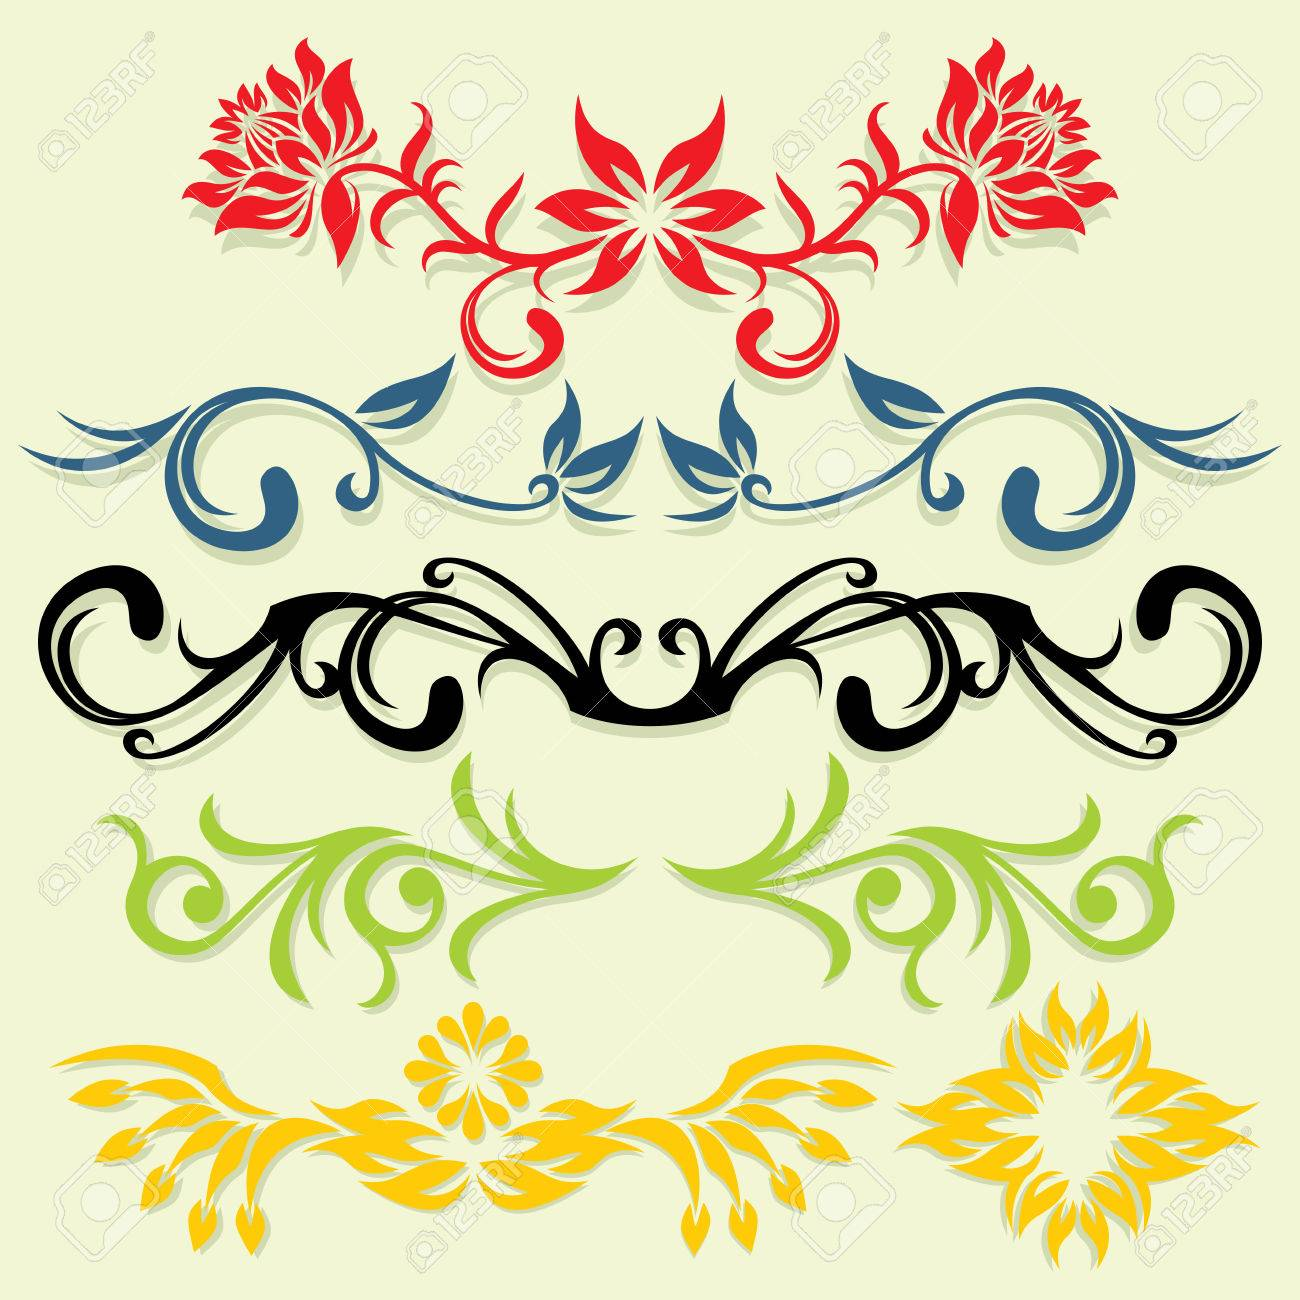 vector ornament In flower style Stock Vector - 1989512